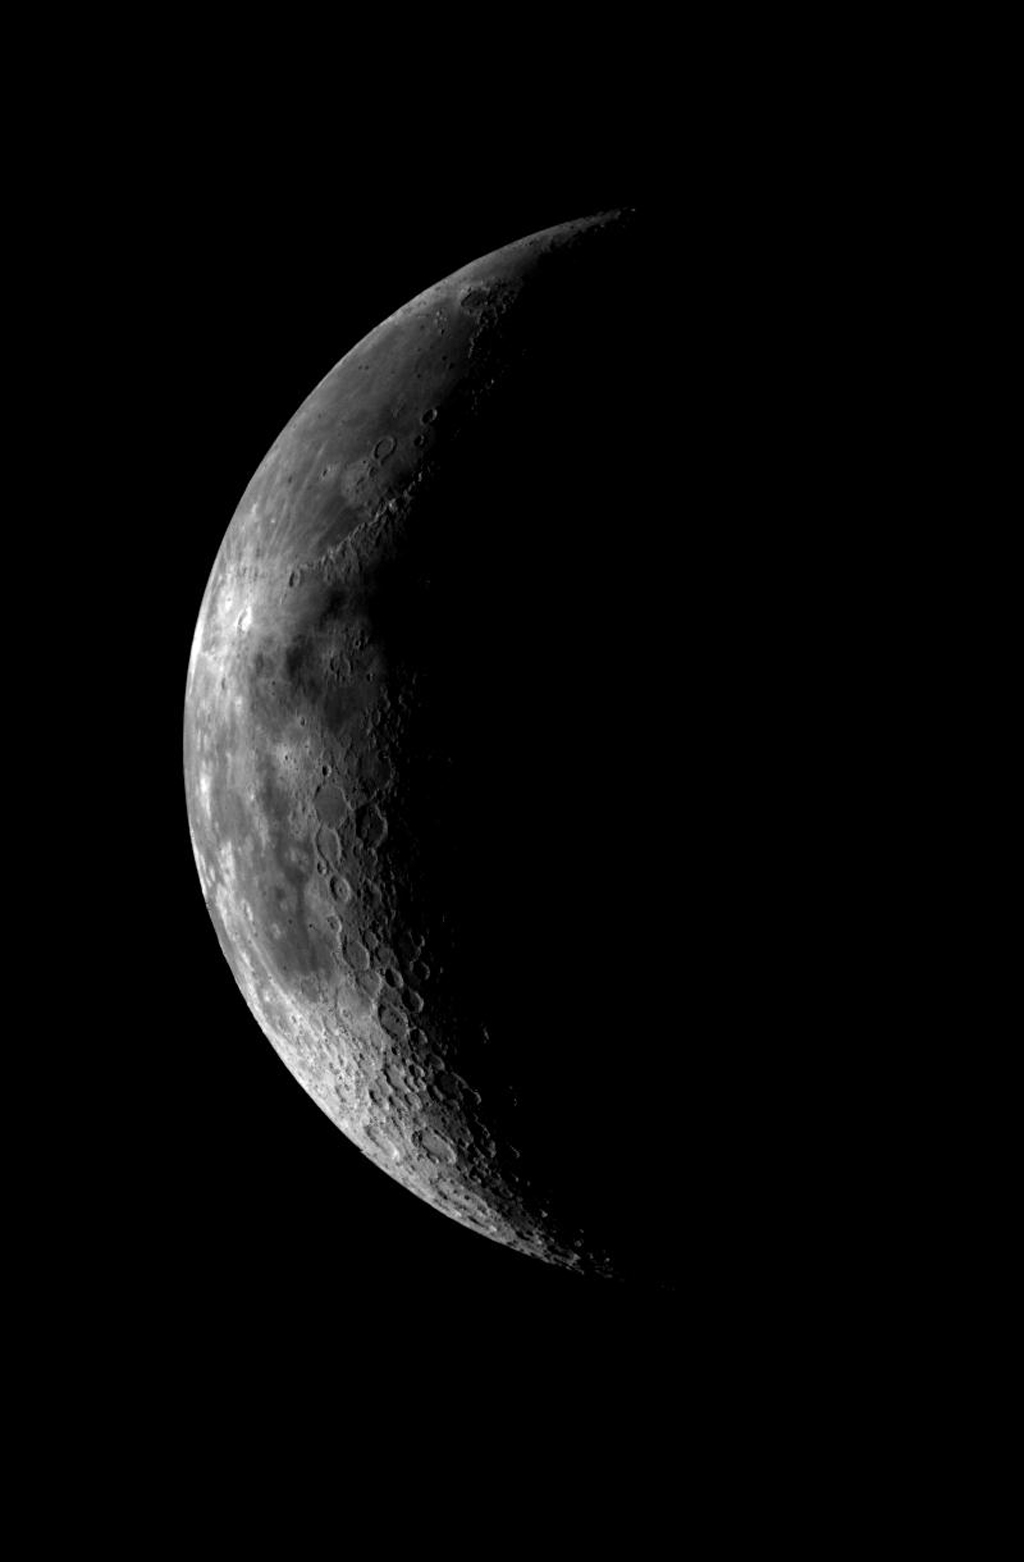 This image of the crescent moon was obtained by the Galileo Solid State imaging system on December 8, 1995 at 5 a.m. PST as NASA's Galileo spacecraft neared the Earth.